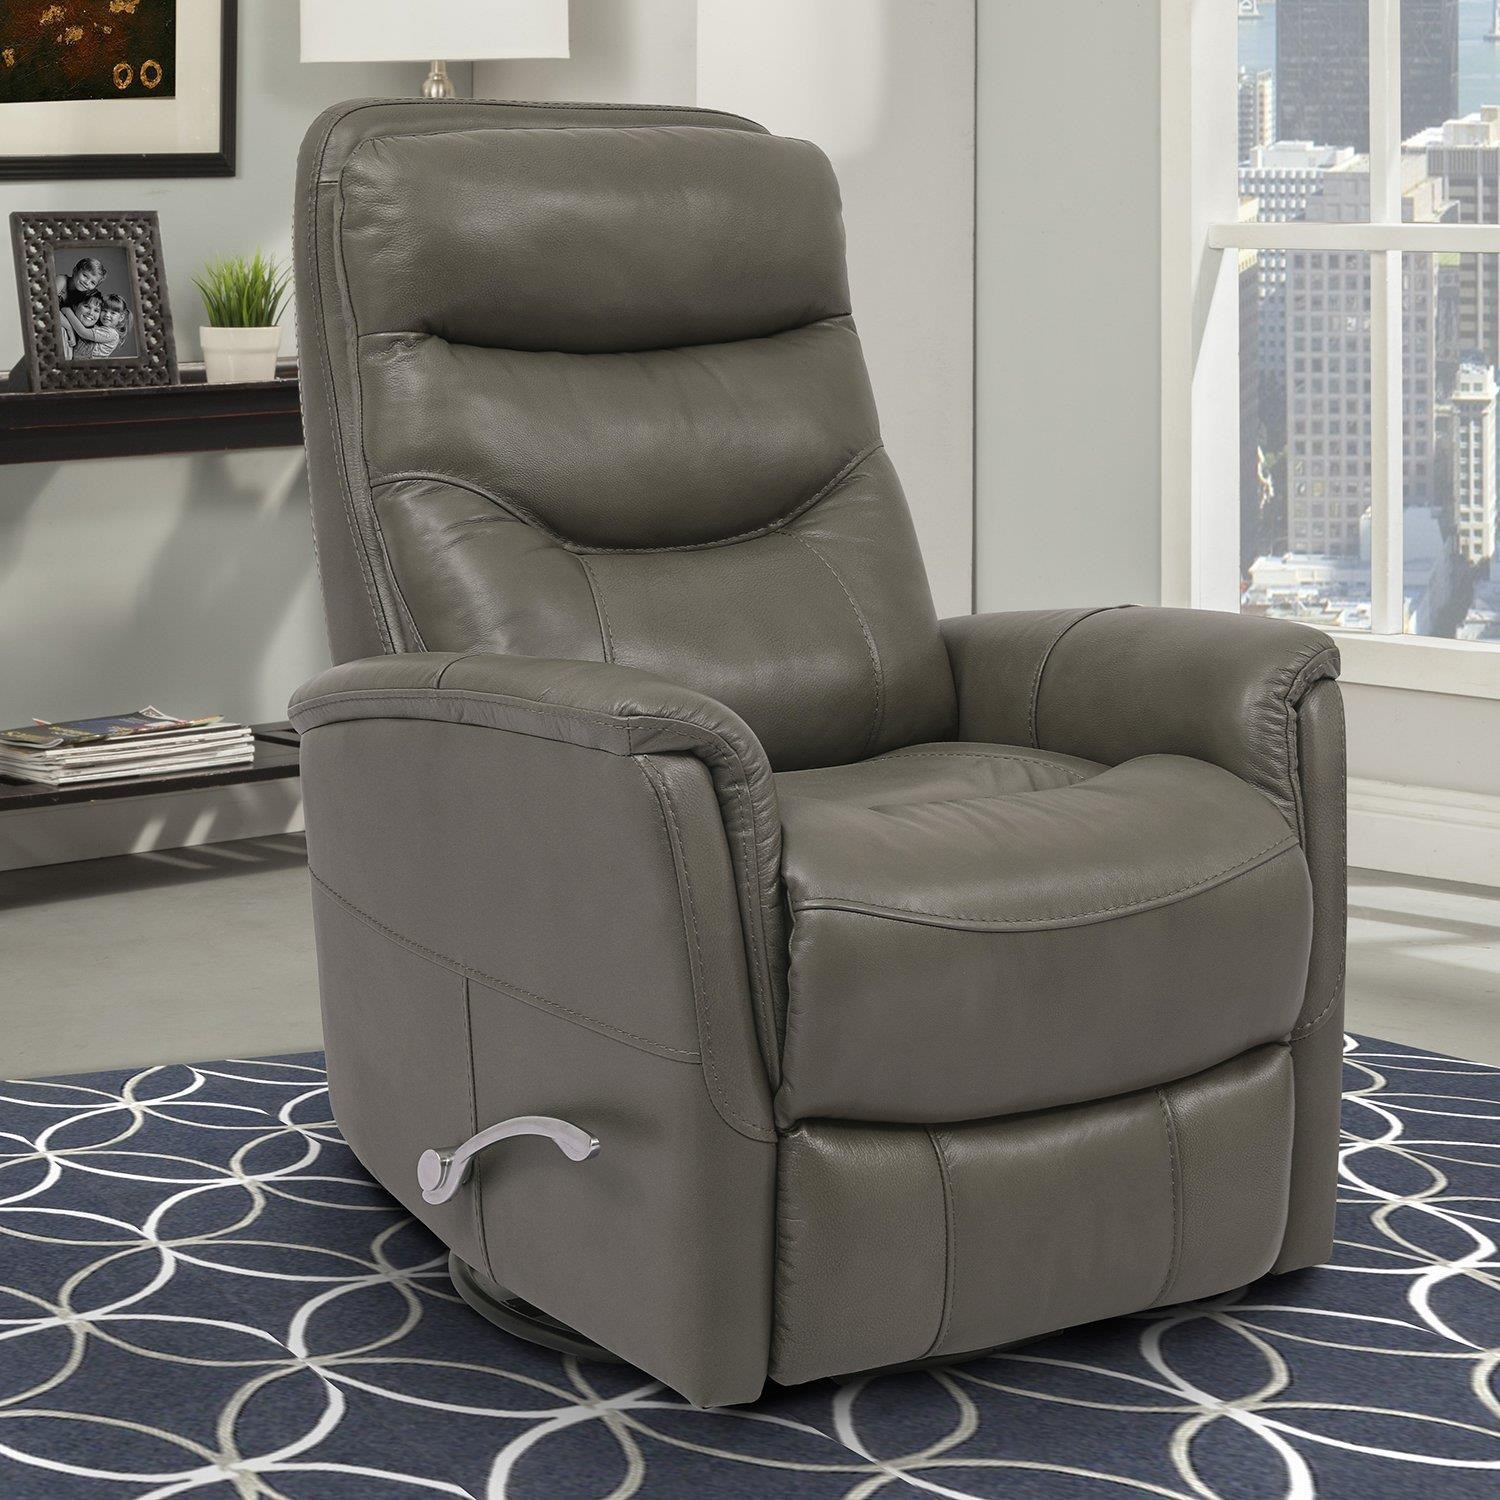 Gemini Gemini Ice Swivel Glider Recliner by Parker House at Johnny Janosik